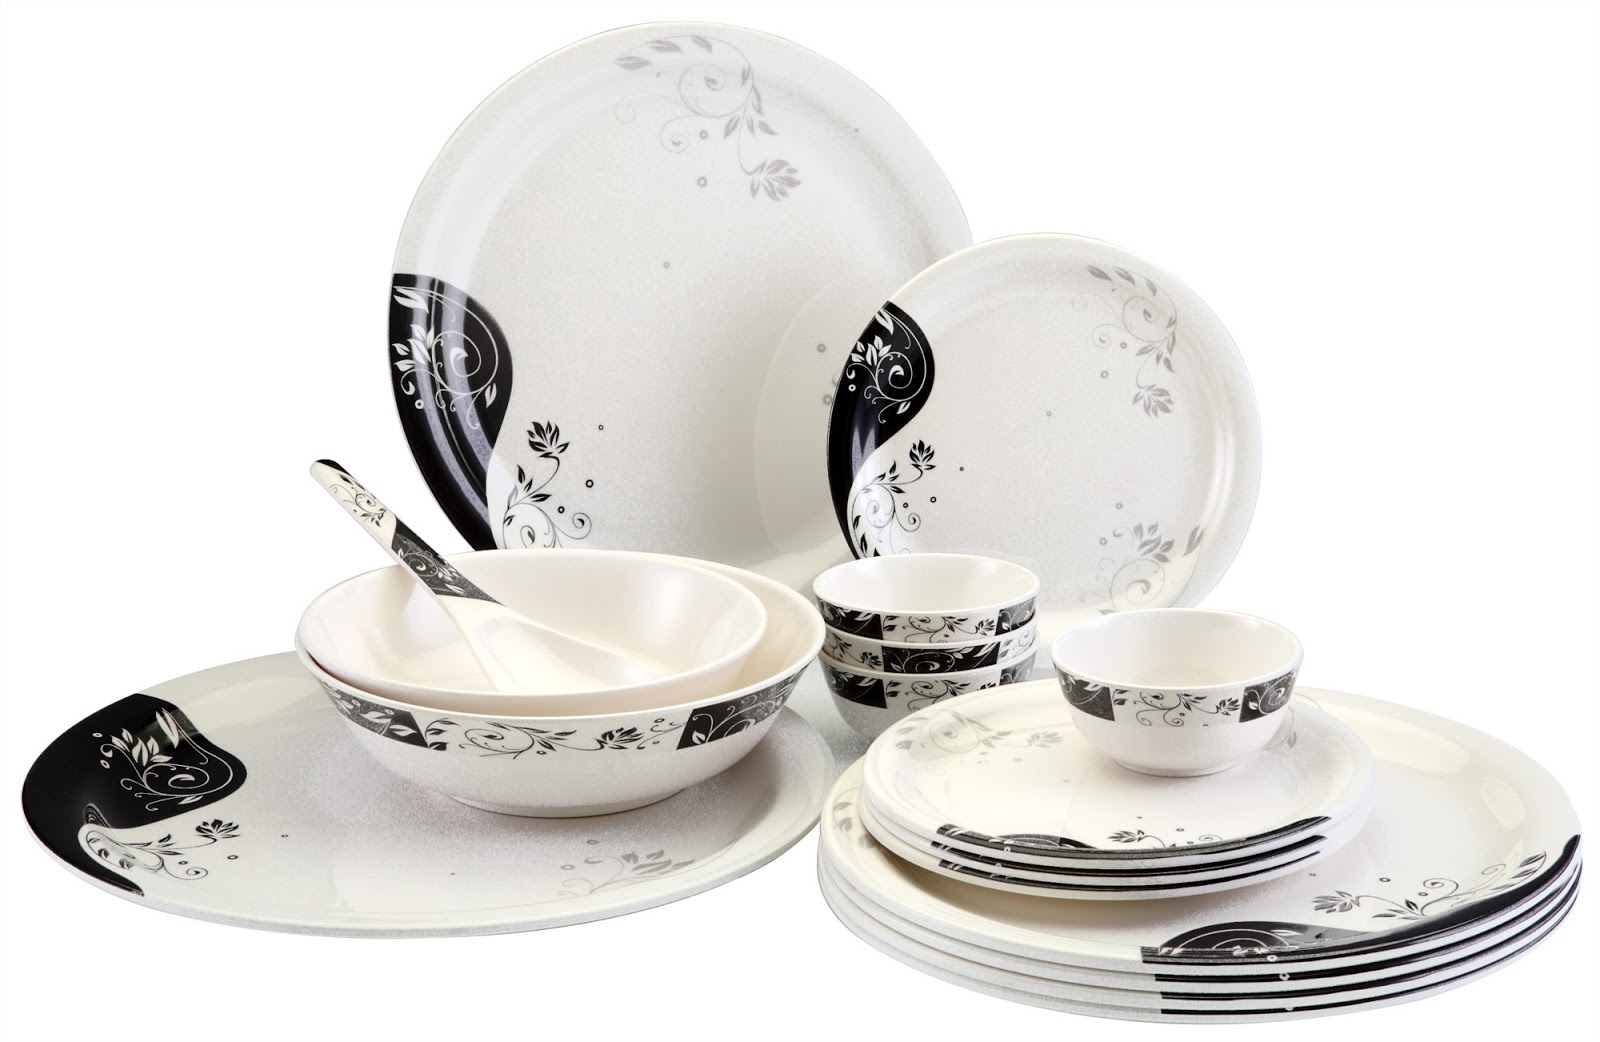 Our tableware and crockery clearance deals are updated regularly to bring you top quality products at great low prices. Our clearance items include plates ...  sc 1 st  d\u0027\u0026sons and rahbar exim ltd & D\u0027\u0026SONS AND RAHBAR EXIM LTD: Rahbar Exim Private Limited ( Crockery ...